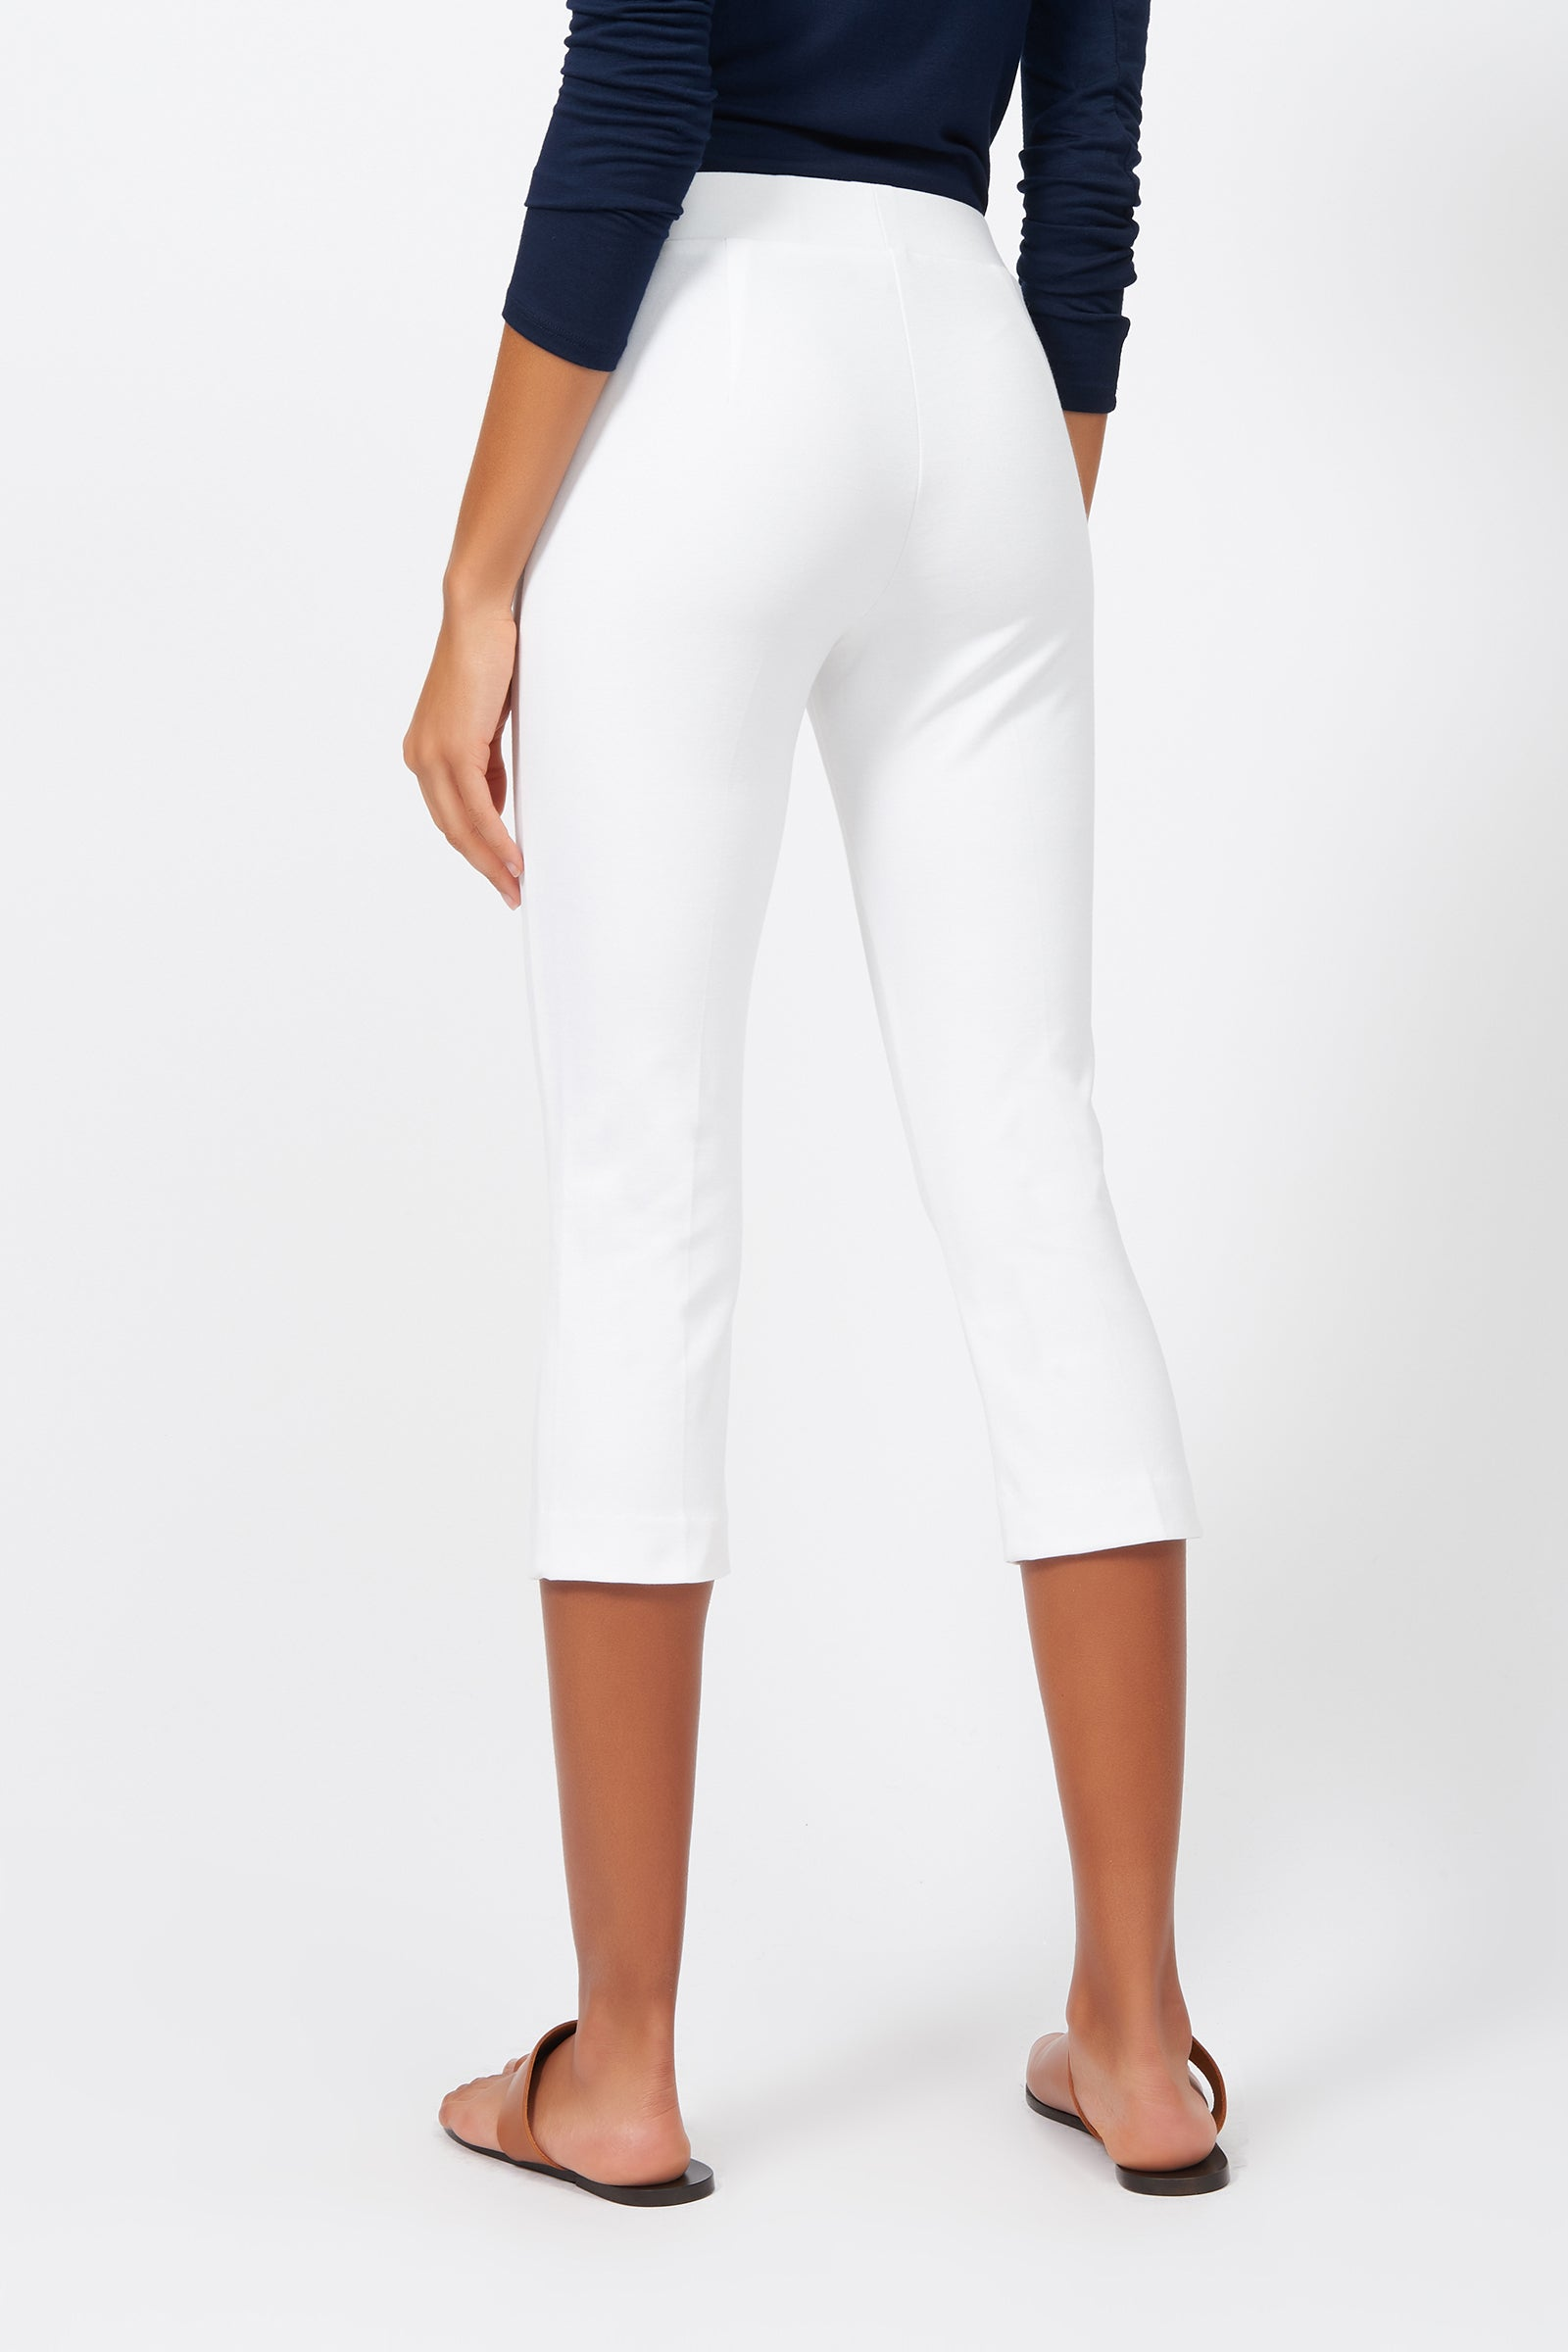 Kal Rieman Pintuck Ponte 3/4 Pant in White on Model Full Front View